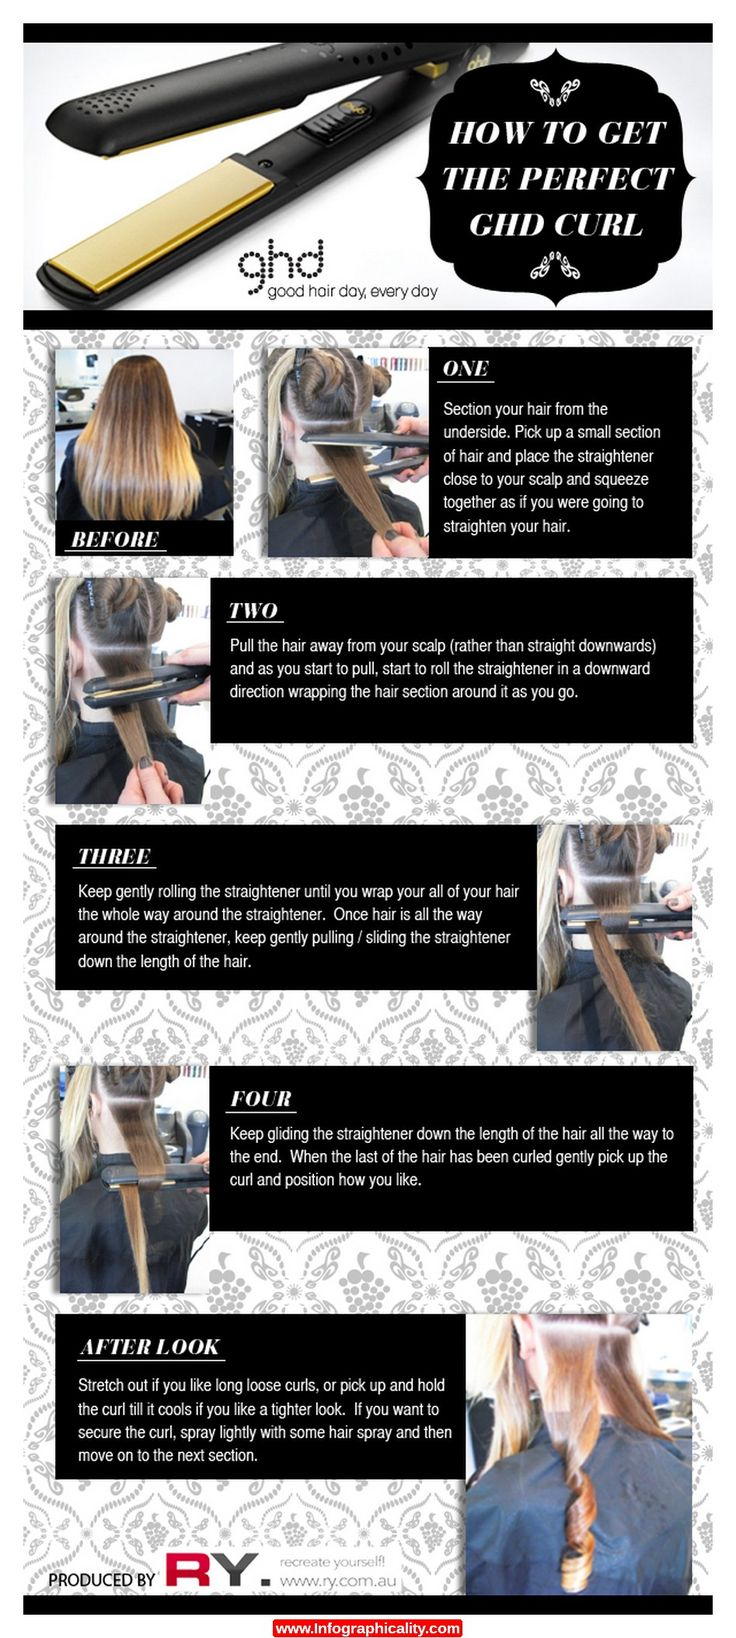 ghd%20wave%20hair%20instructographic%20Infographic Ghd Wave Hair Instructographic Infographic